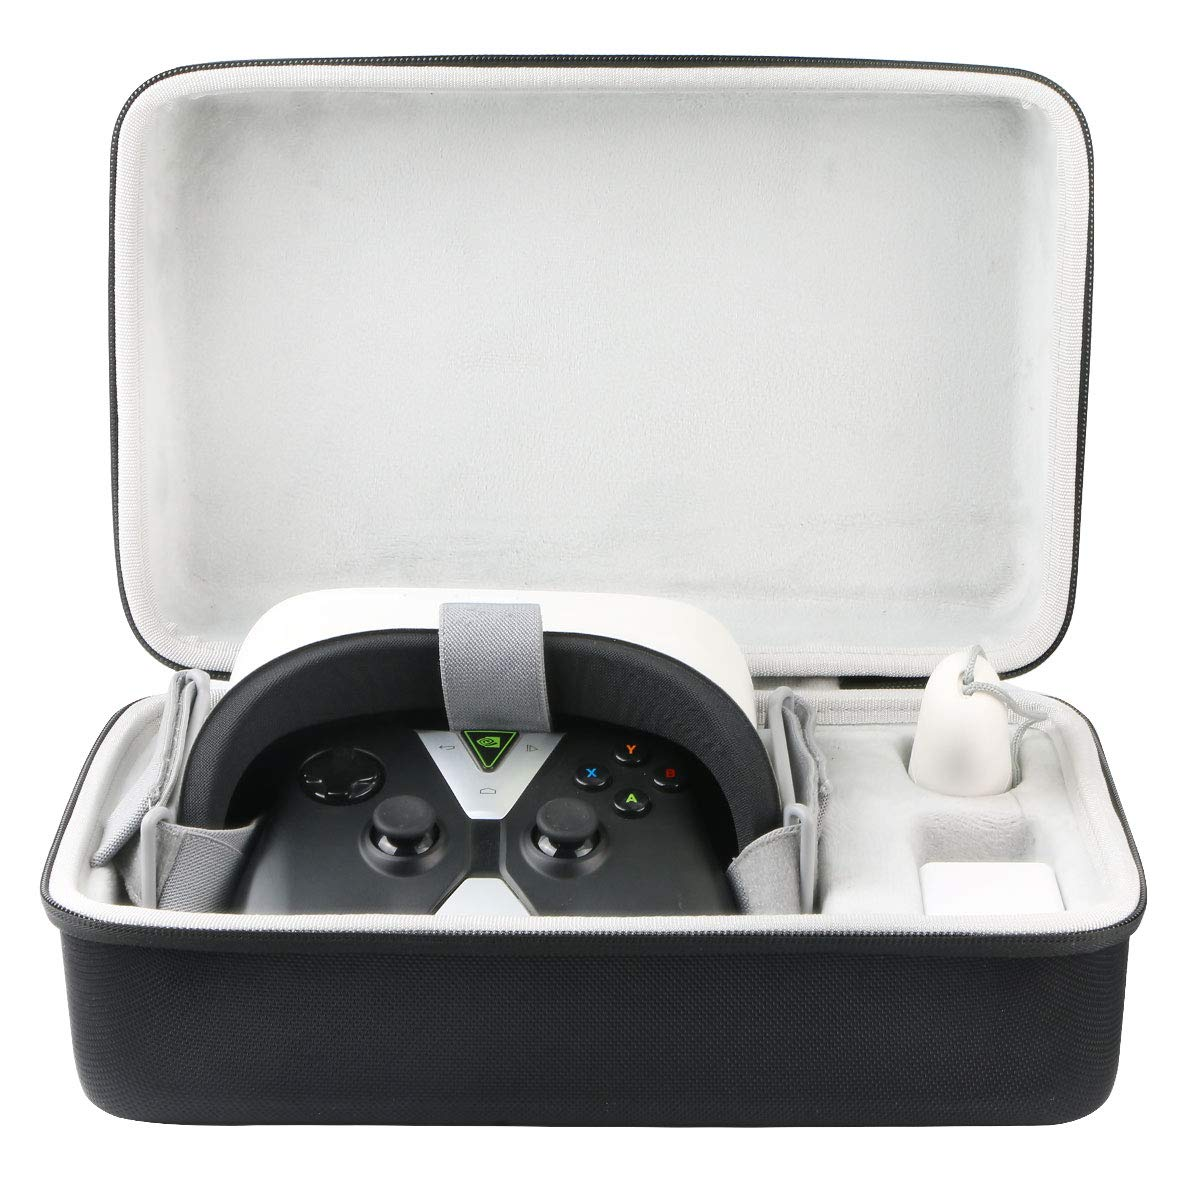 Khanka Hard Travel Case Replacement for Oculus Go Standalone Virtual Reality VR Headset (Fits Gaming Remote Controller) by khanka